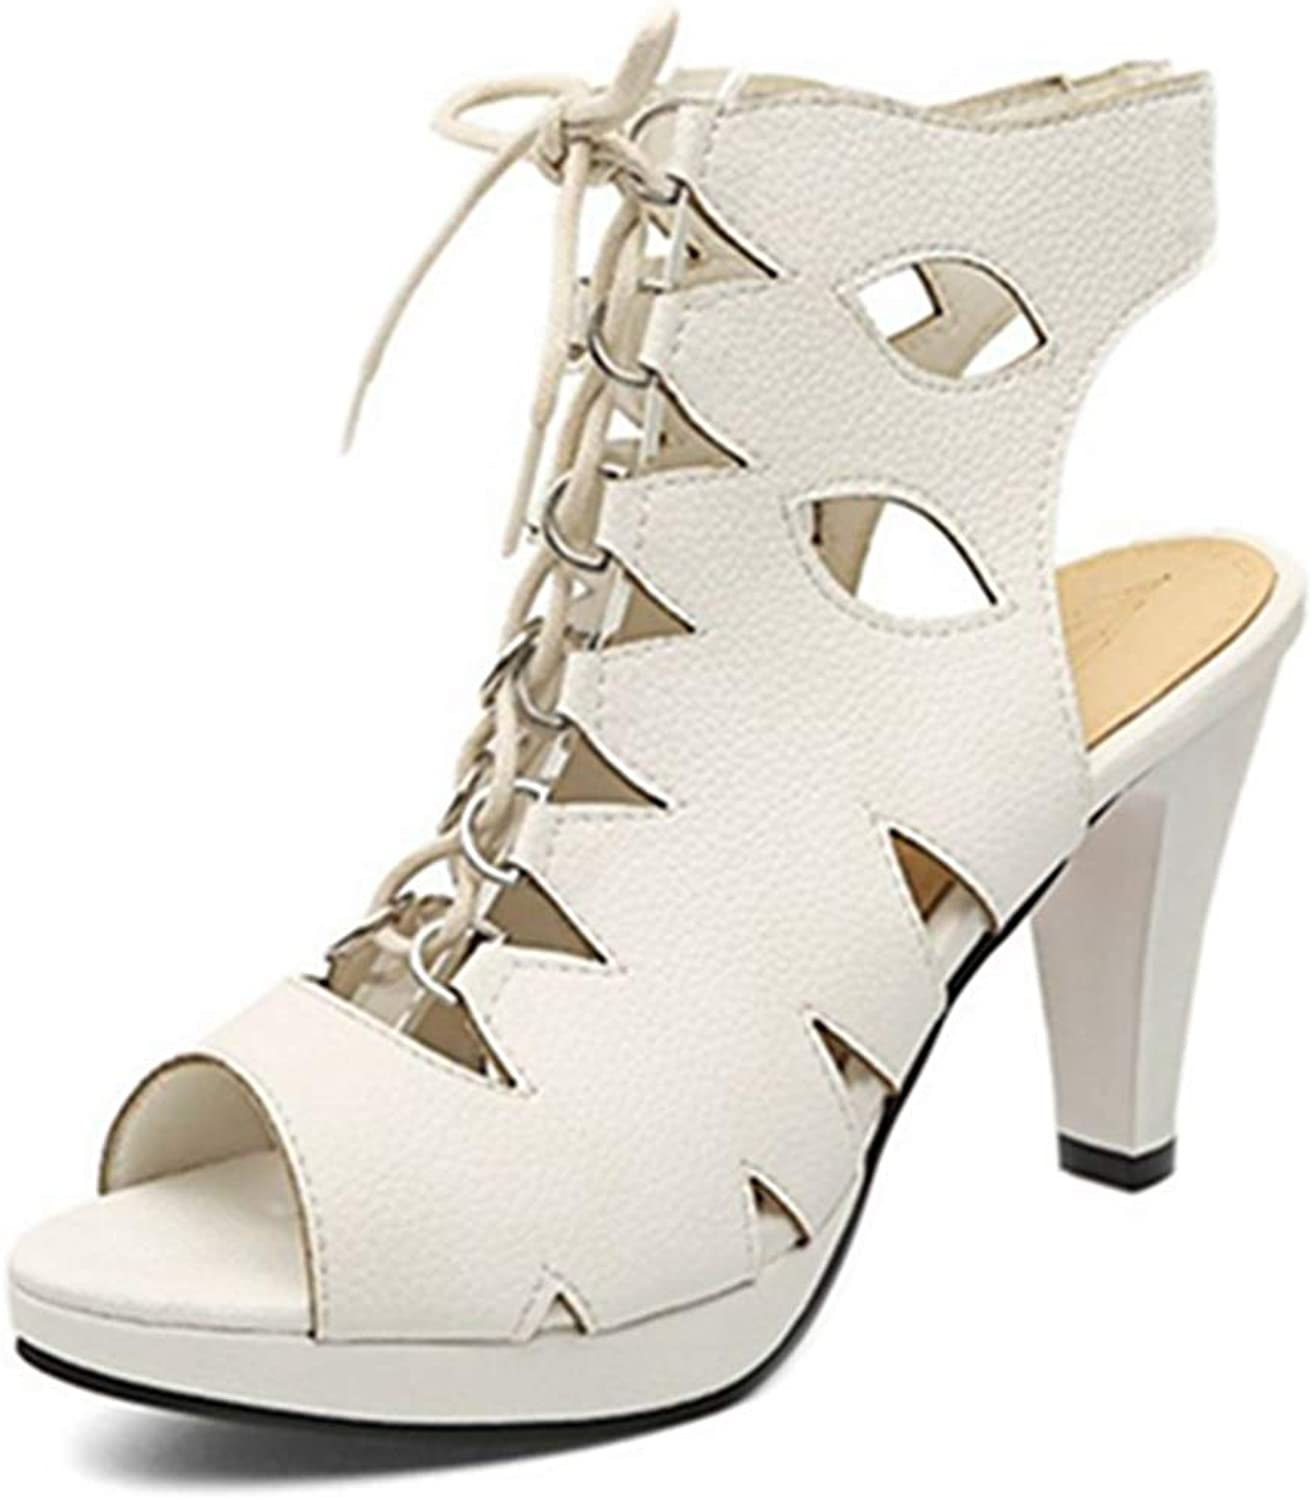 SJJH Sandal-Boots with High Heel and Open Toe Gladiator Sandals with Roman Style